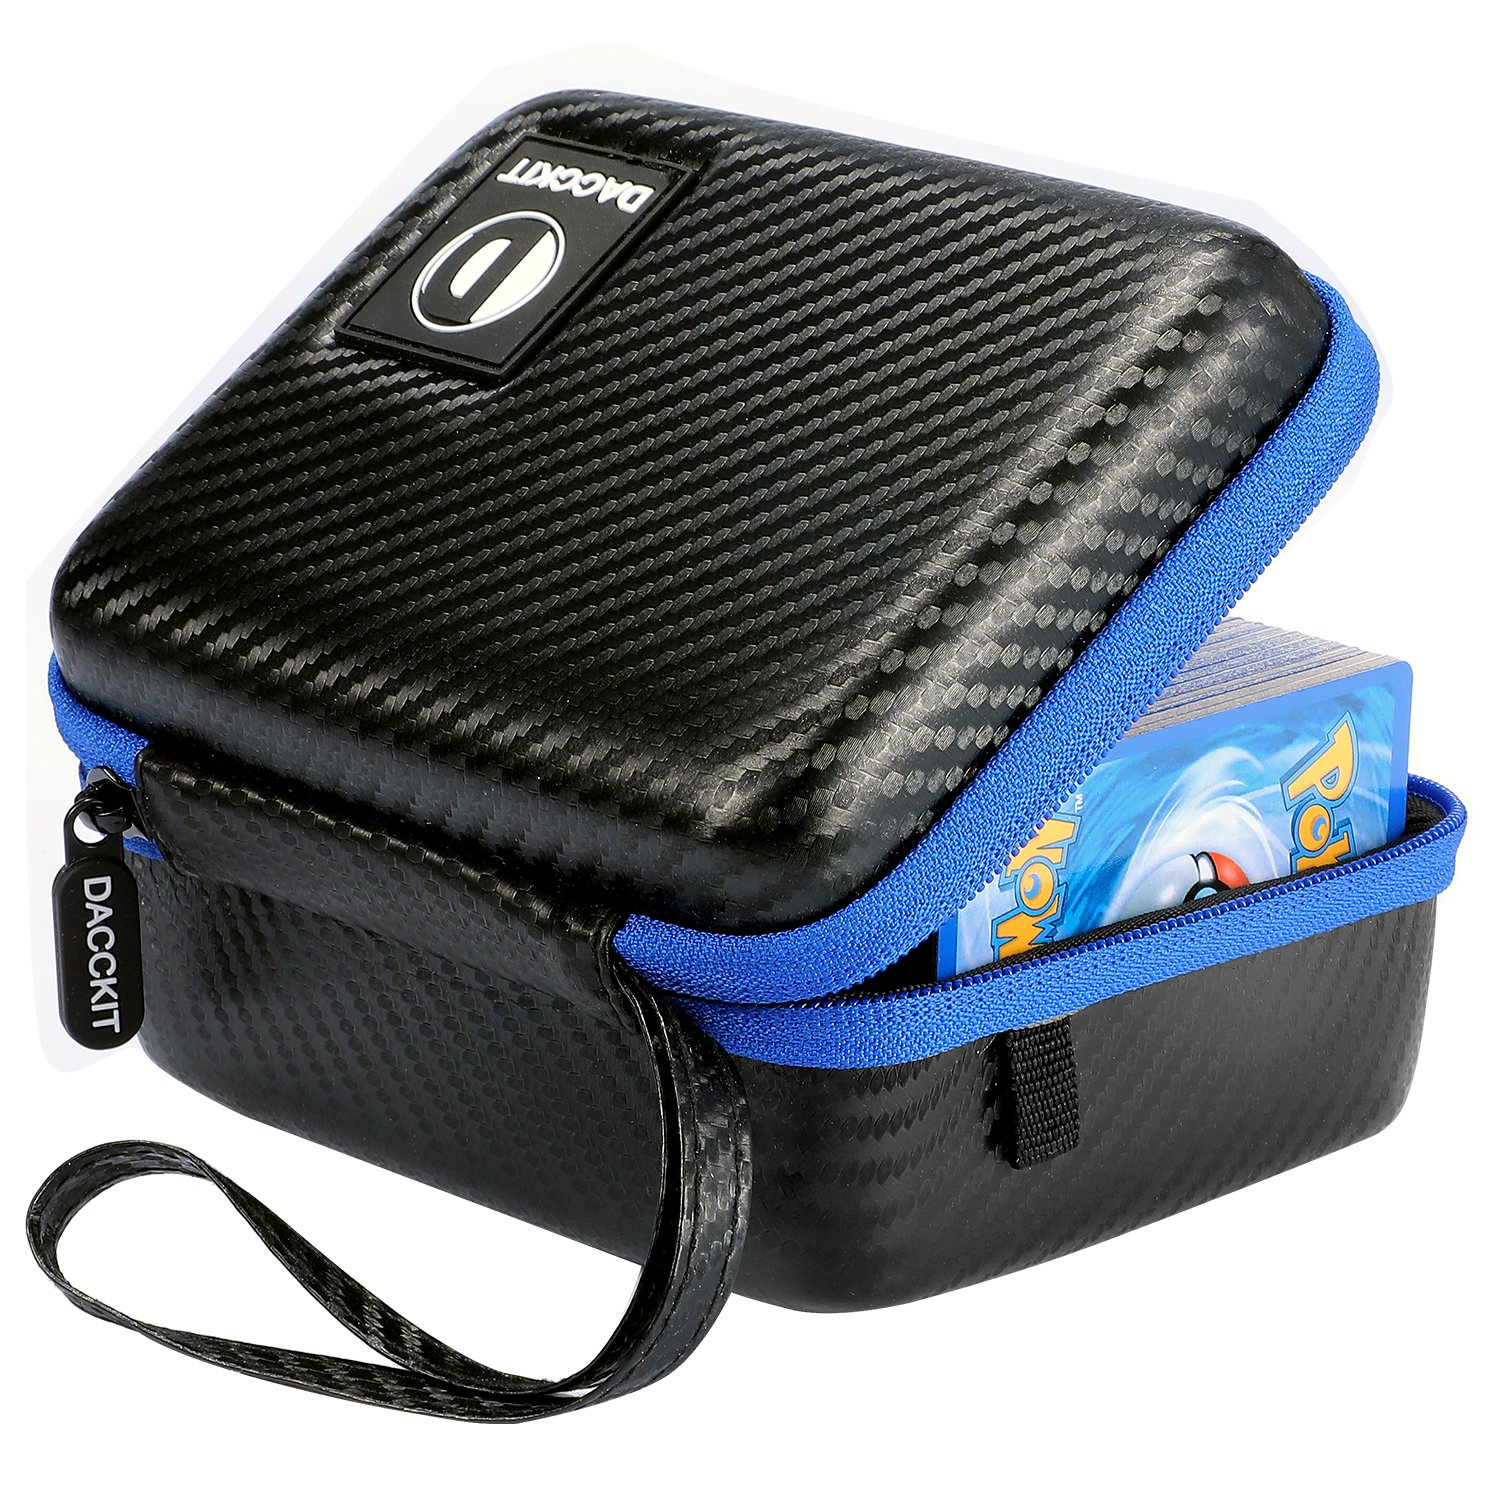 DACCKIT Carrying Case Compatible with Pokemon Trading Cards - Fitsup to 400 Cards, Card Holder with Hand Strap & Carabiner